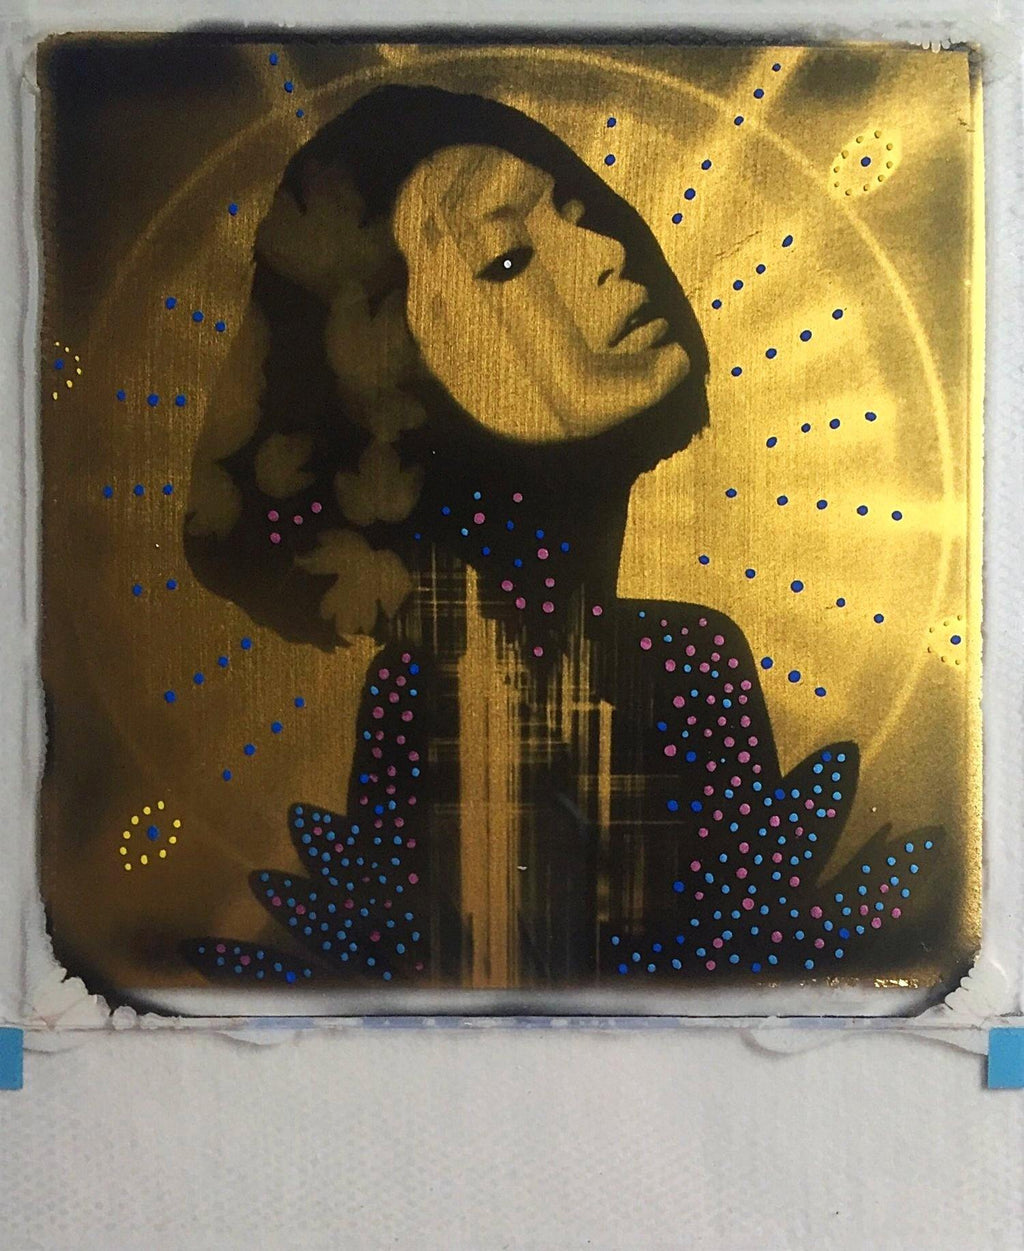 Diamond Skies, Andrew Millar, gold foil, polaroid, art, La Maison Rebelle, gift shop, Los Angeles, gallery, fine art